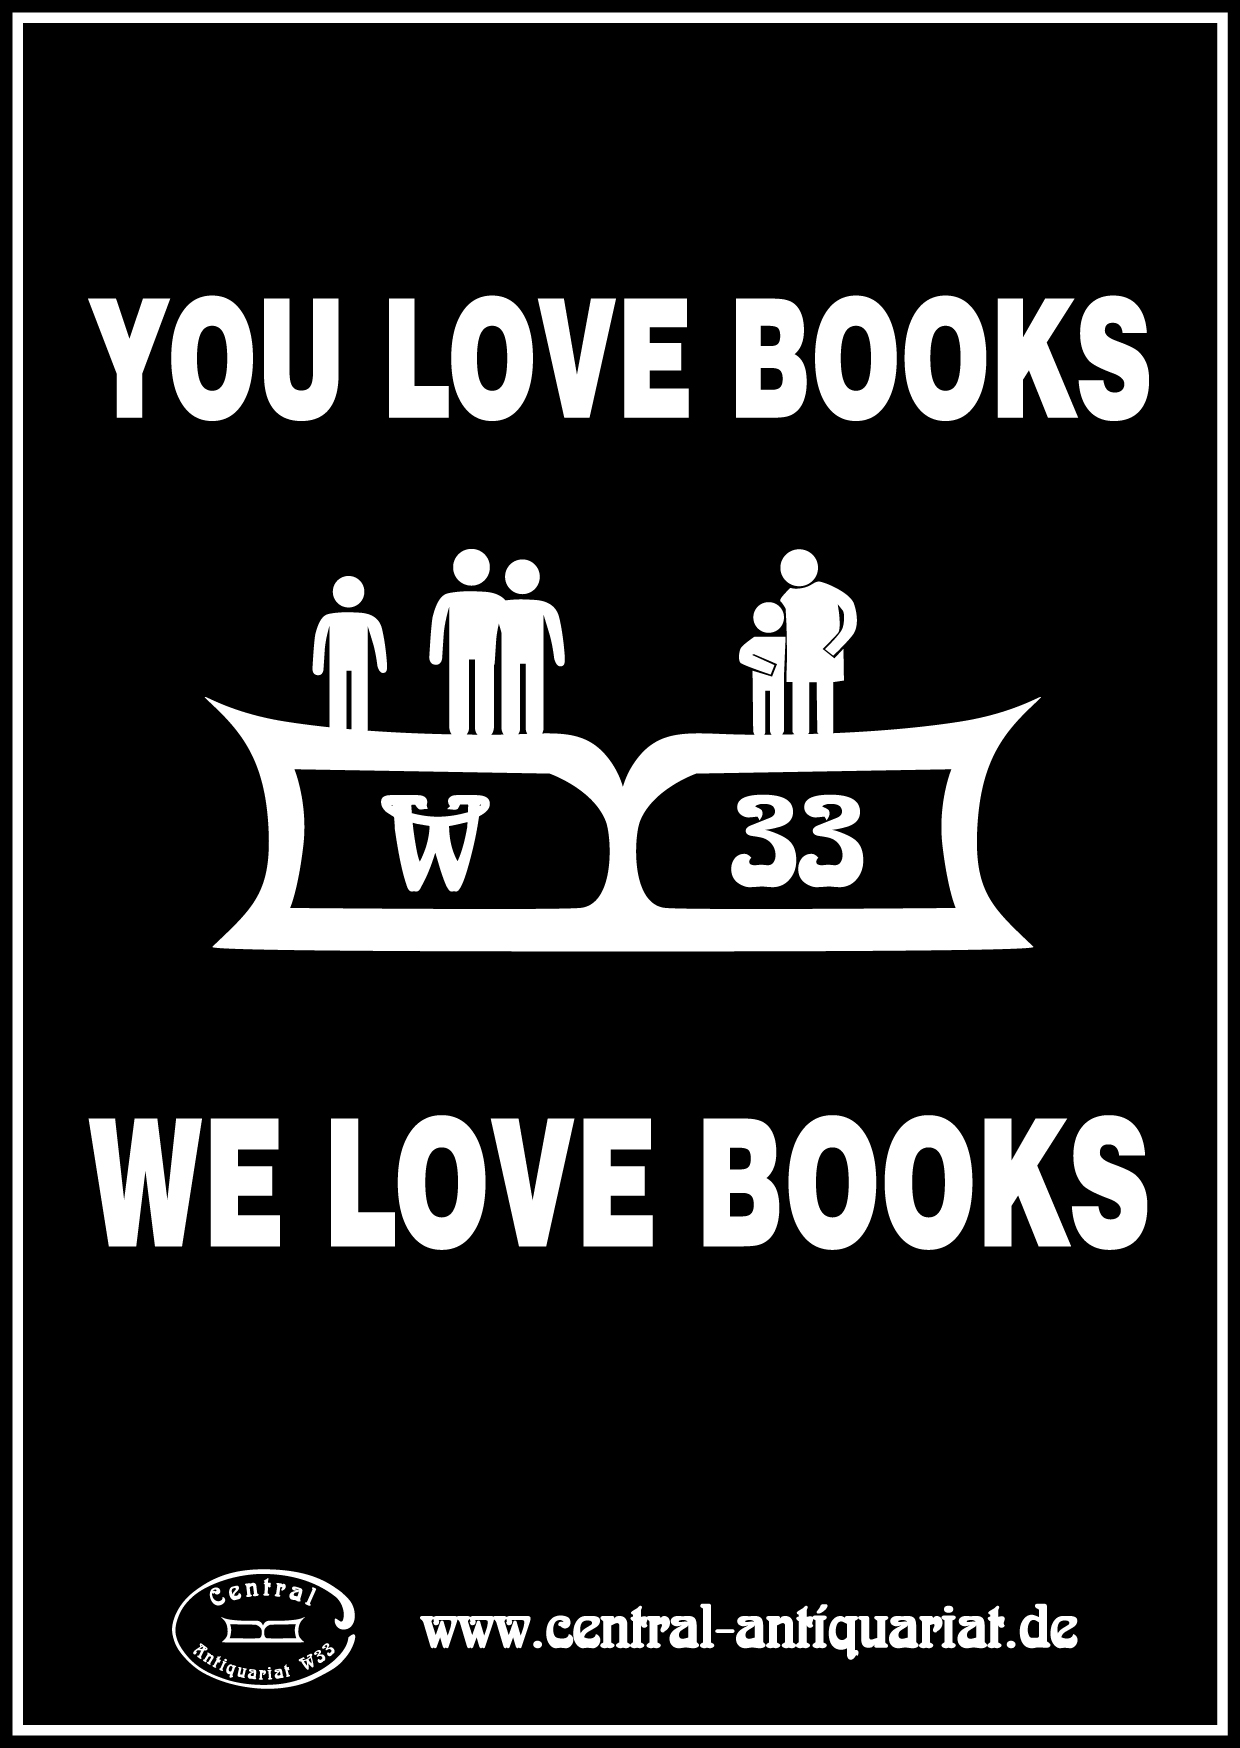 You love books 2